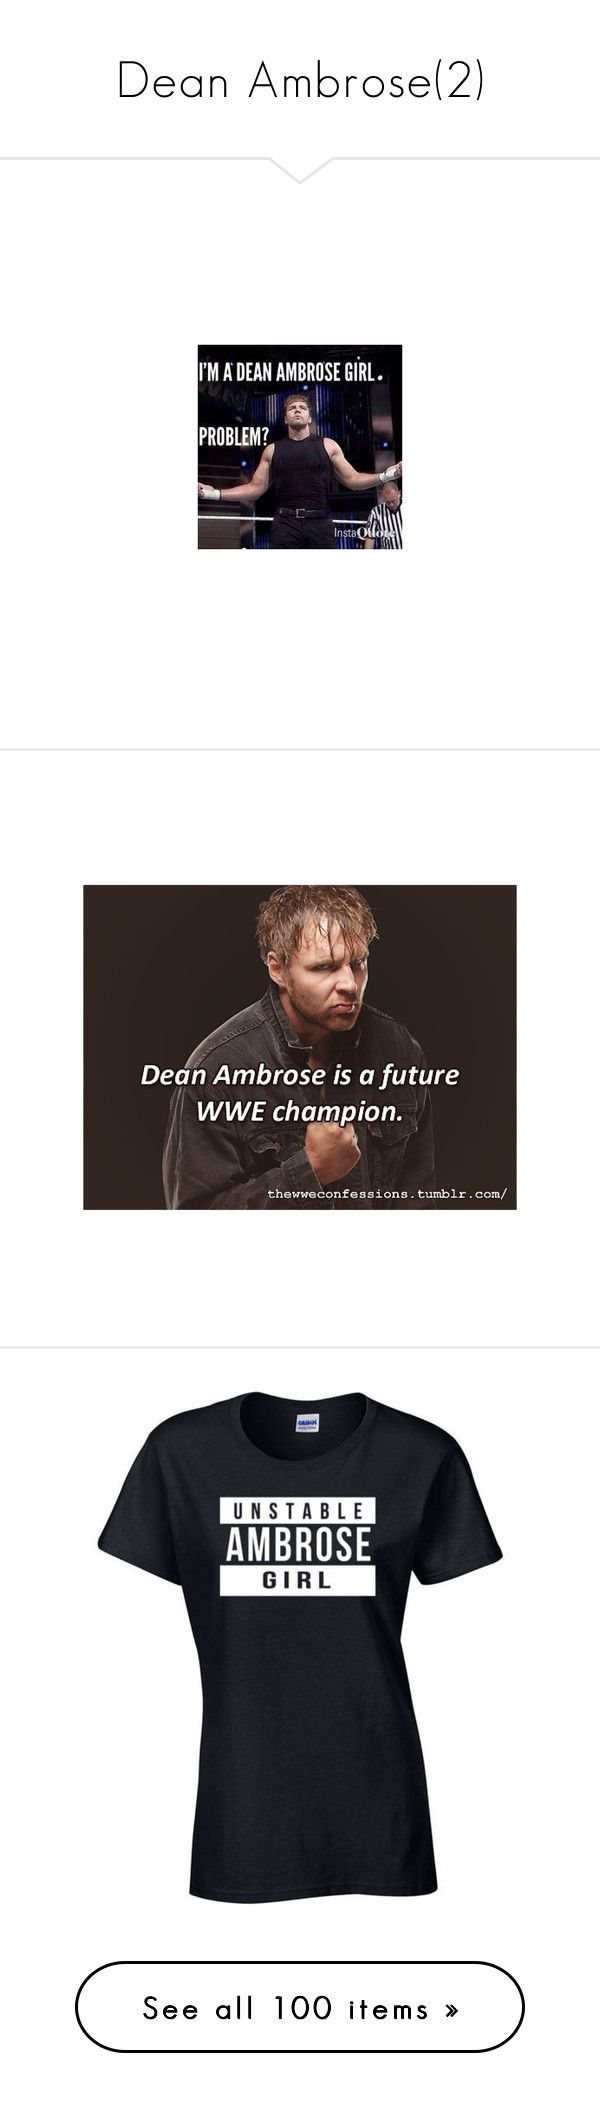 """Dean Ambrose(2)"" by jamiehemmings19 ❤ liked on Polyvore featuring wwe, dean ambrose, tops, t-shirts, wwe tops, crew top, wwe tee, crew-neck tops, wwe t shirts and home"